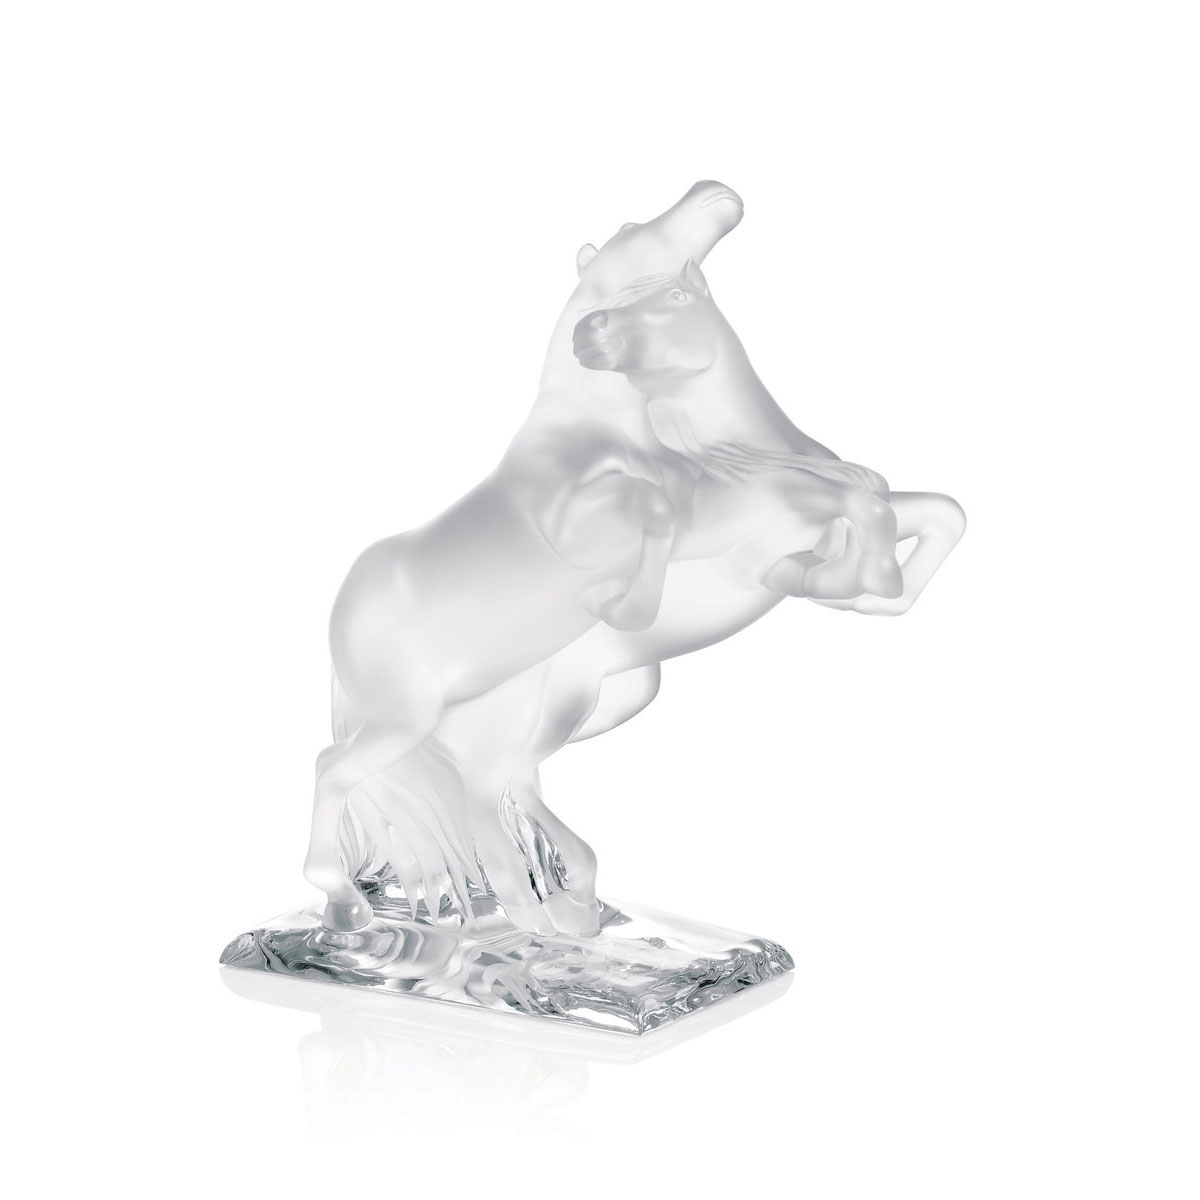 Lalique Two Wild Horses Sculpture, Limited Edition